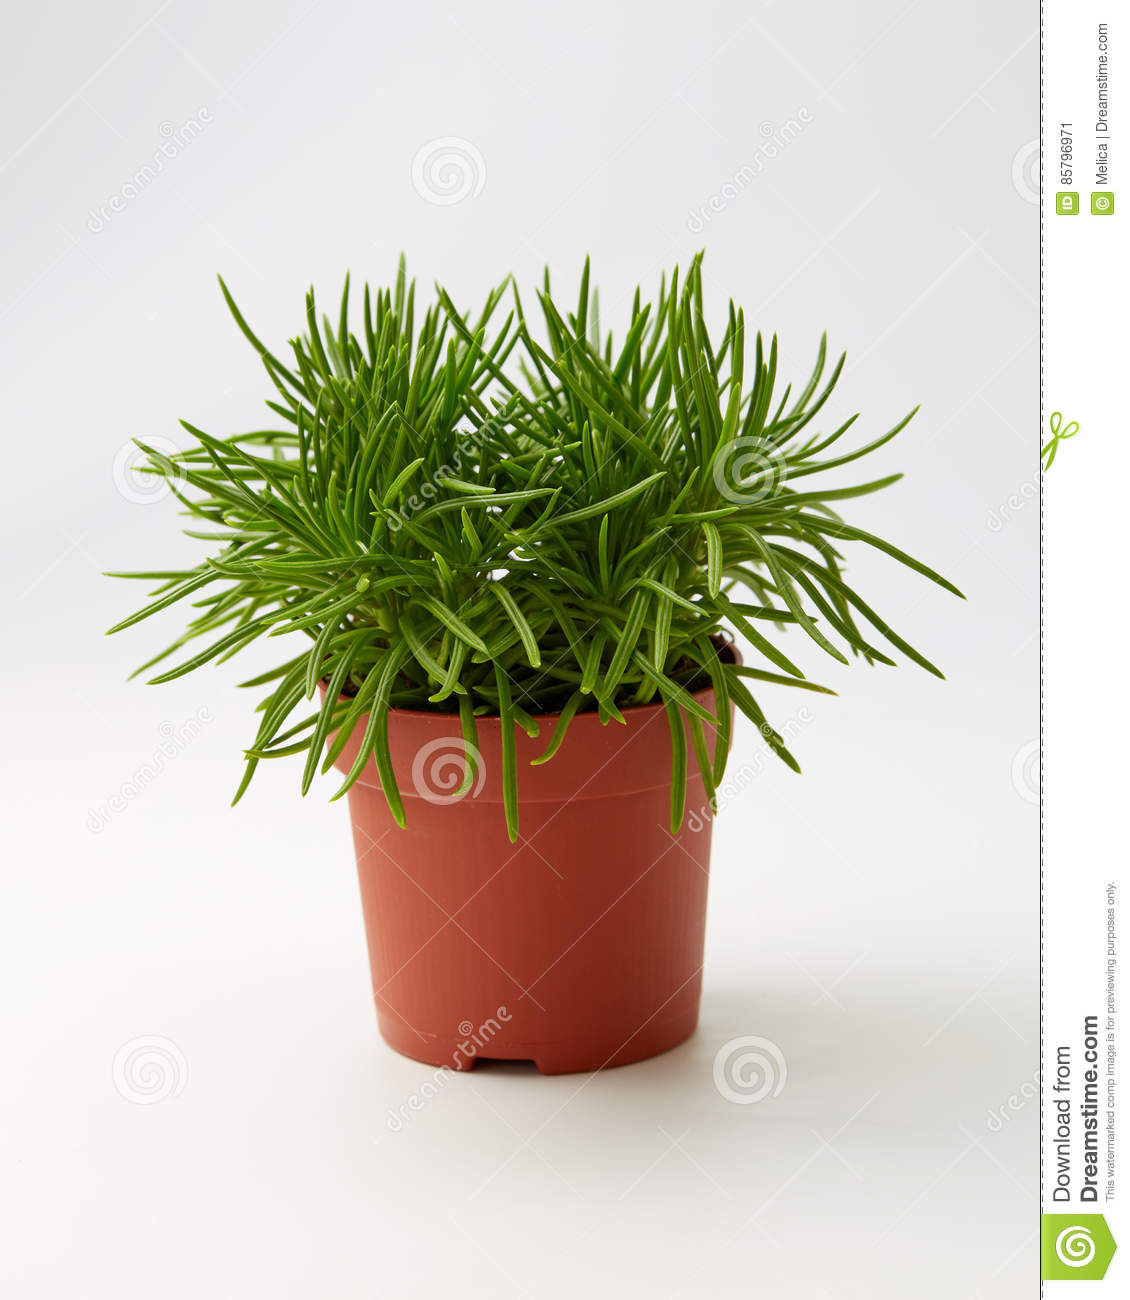 green succulent senecio senecio himalaya stock image. Black Bedroom Furniture Sets. Home Design Ideas